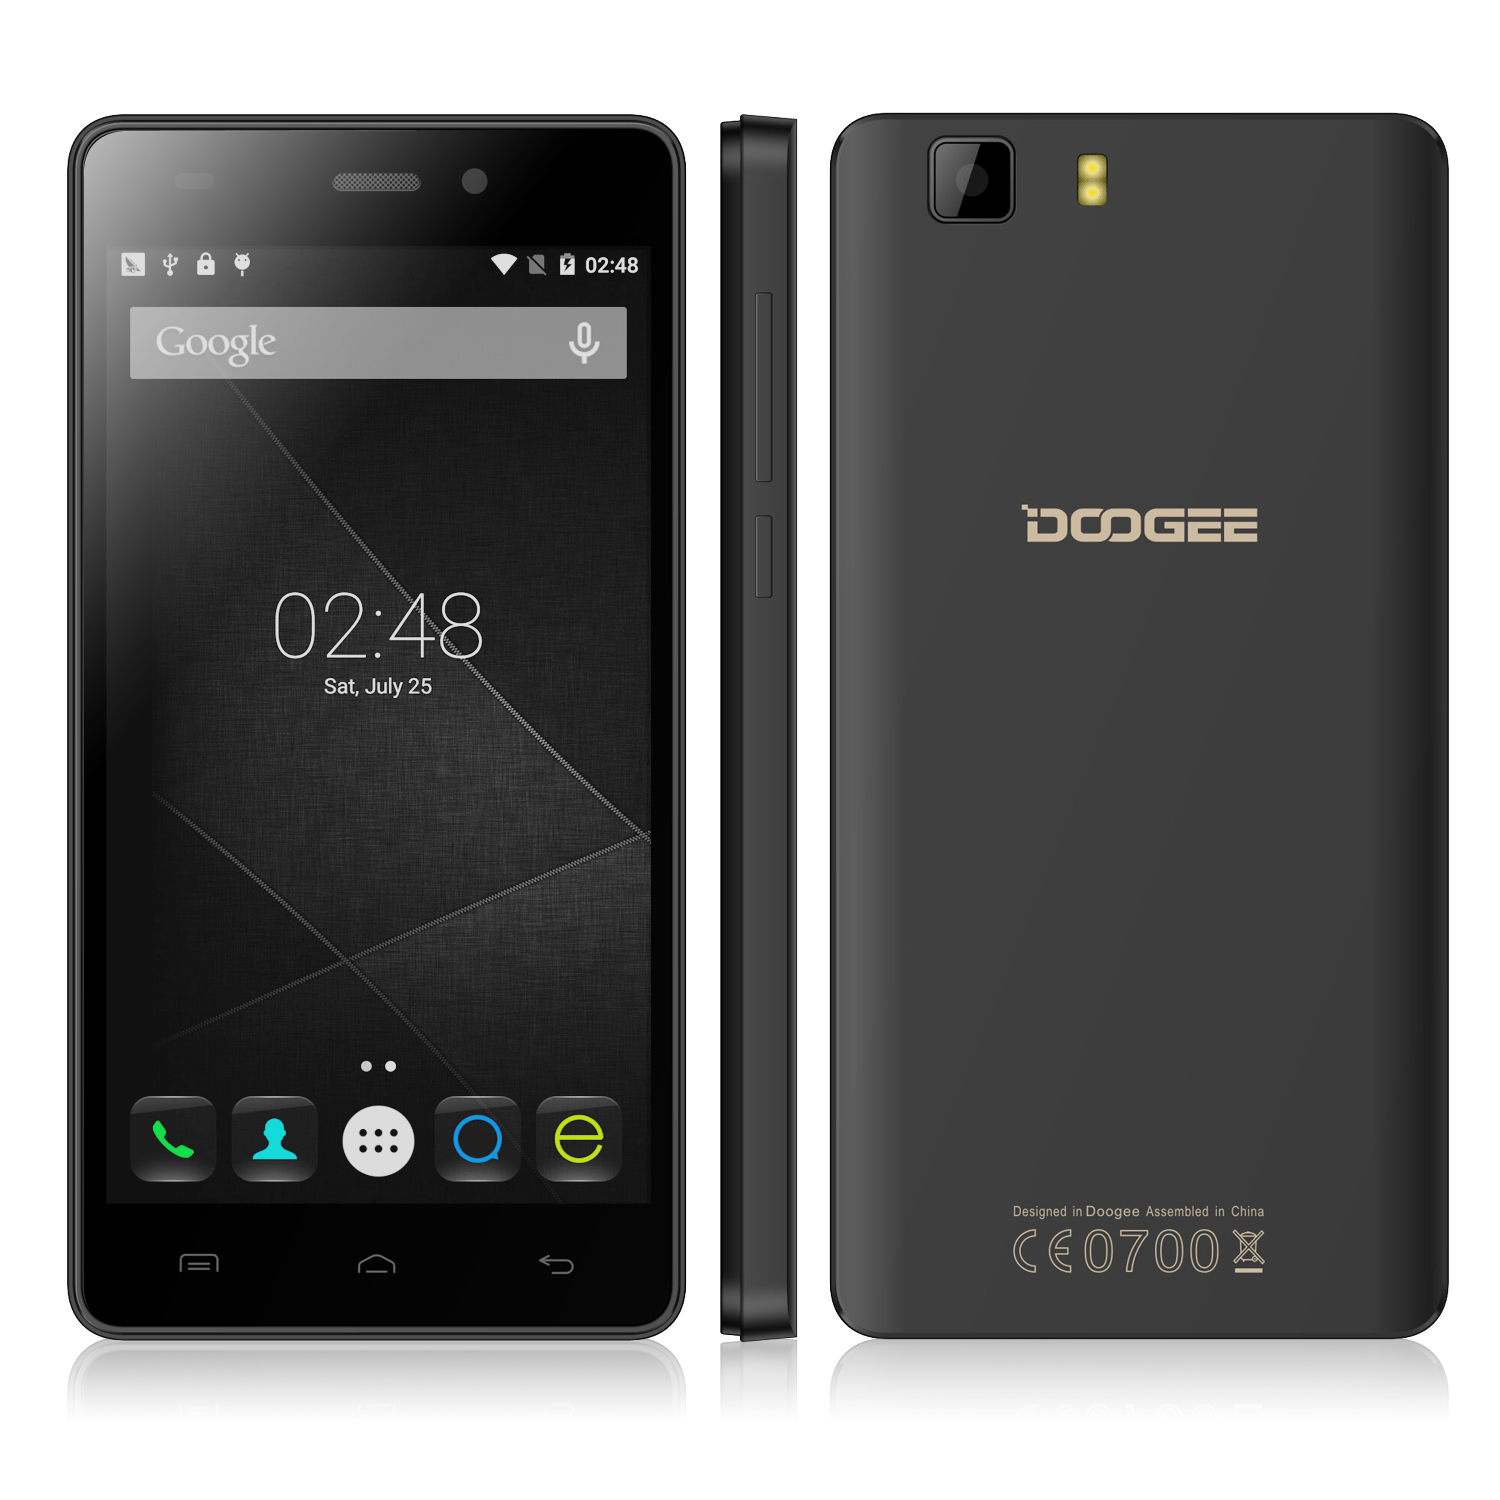 DOOGEE X5 Pro Smartphone 4G 64bit MTK6735 Quad Core 2GB 16GB 5.0 Inch HD Screen Black